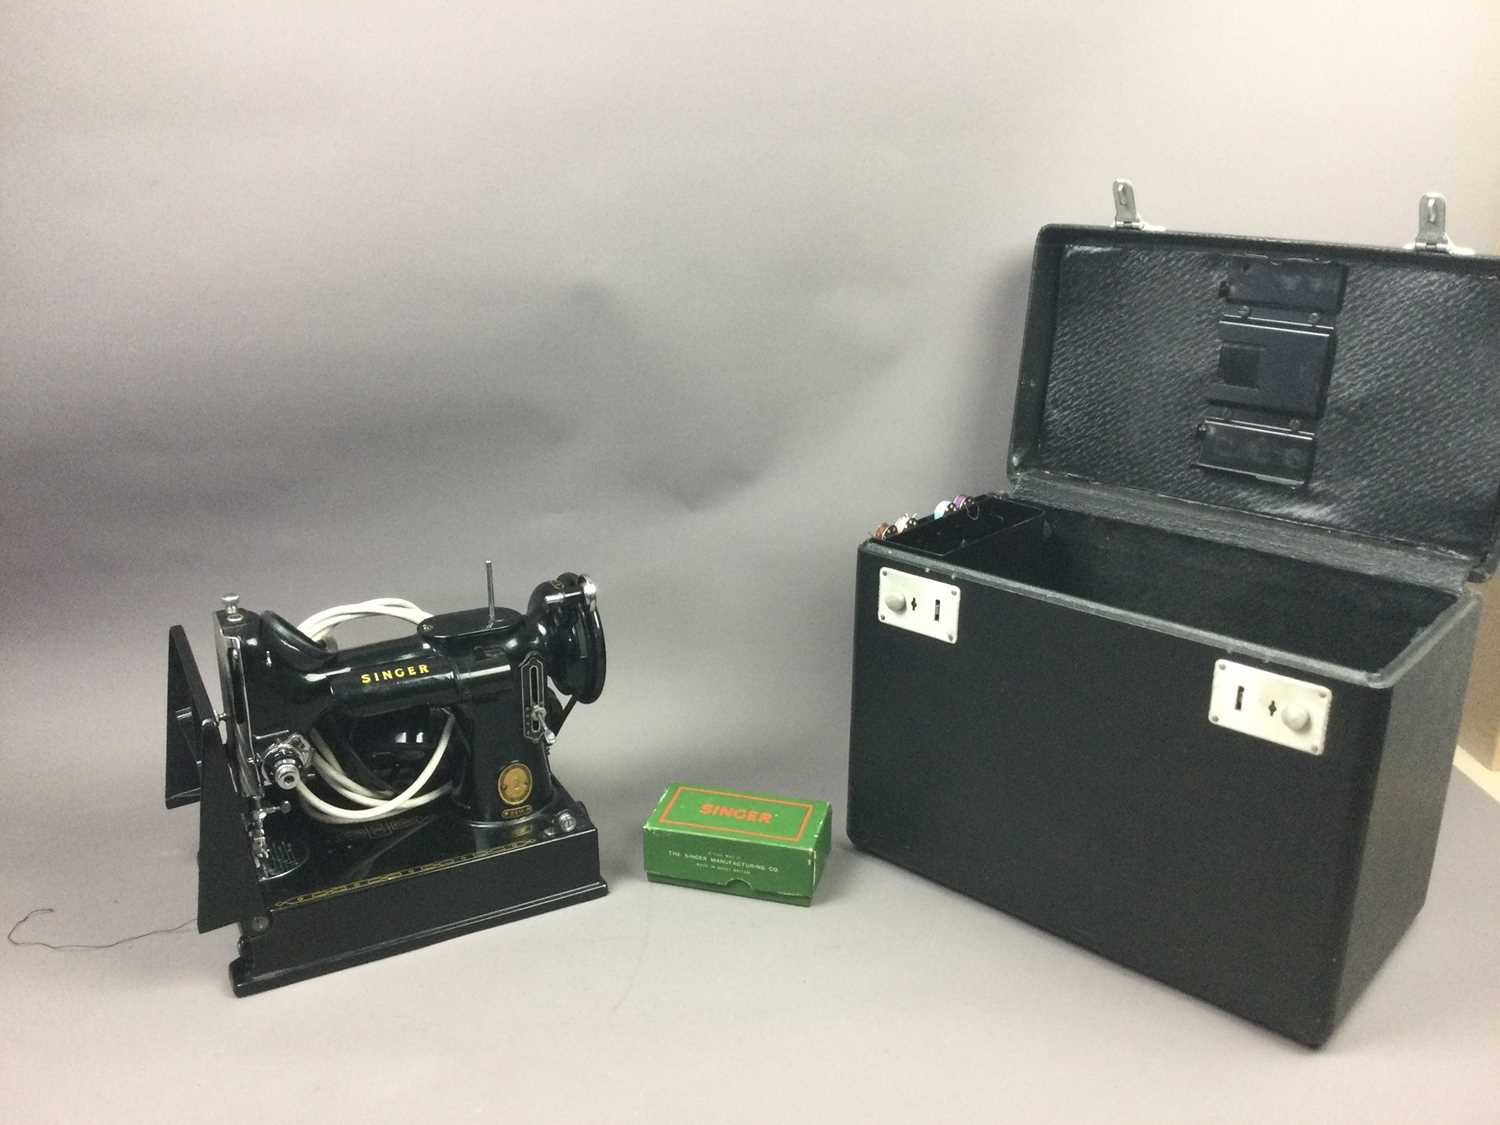 Lot 4 - A SINGER 221K SEWING MACHINE AND A SEWING BOX